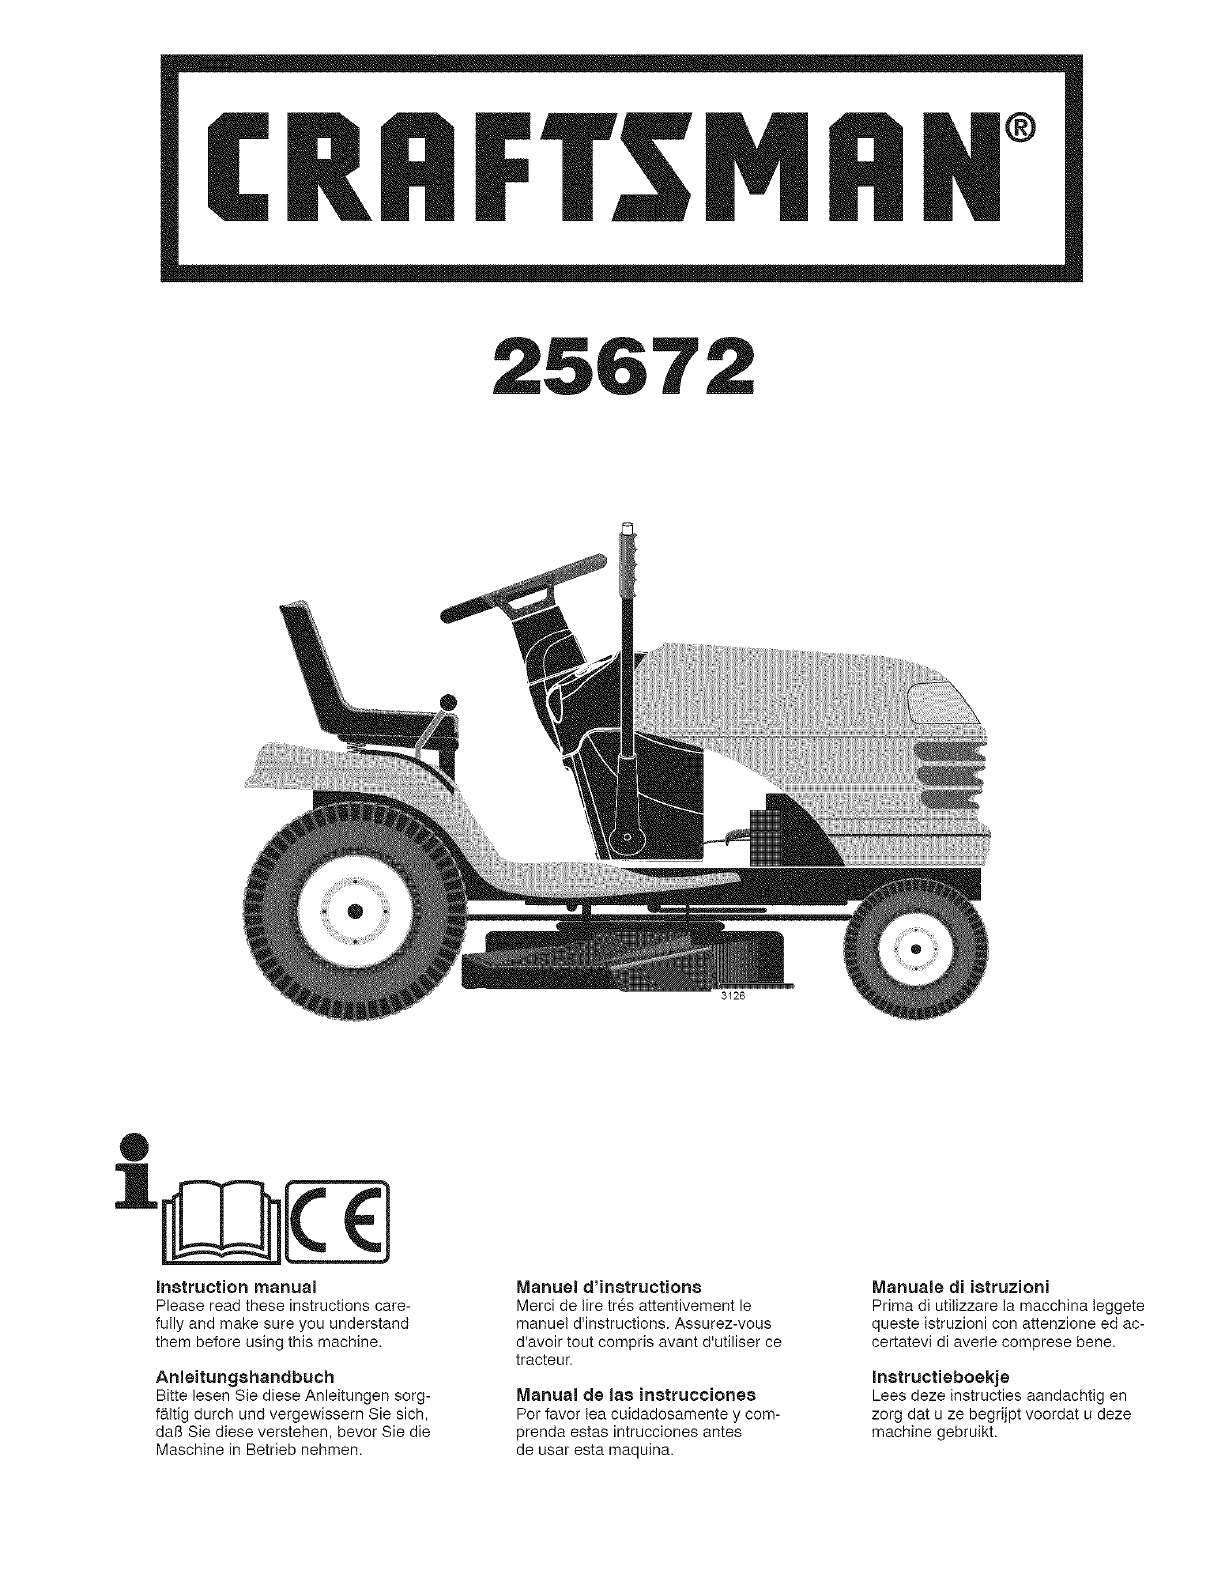 Il Tappeto Volante Wiki Craftsman 917256720 User Manual Tractor Manuals And Guides L0802451